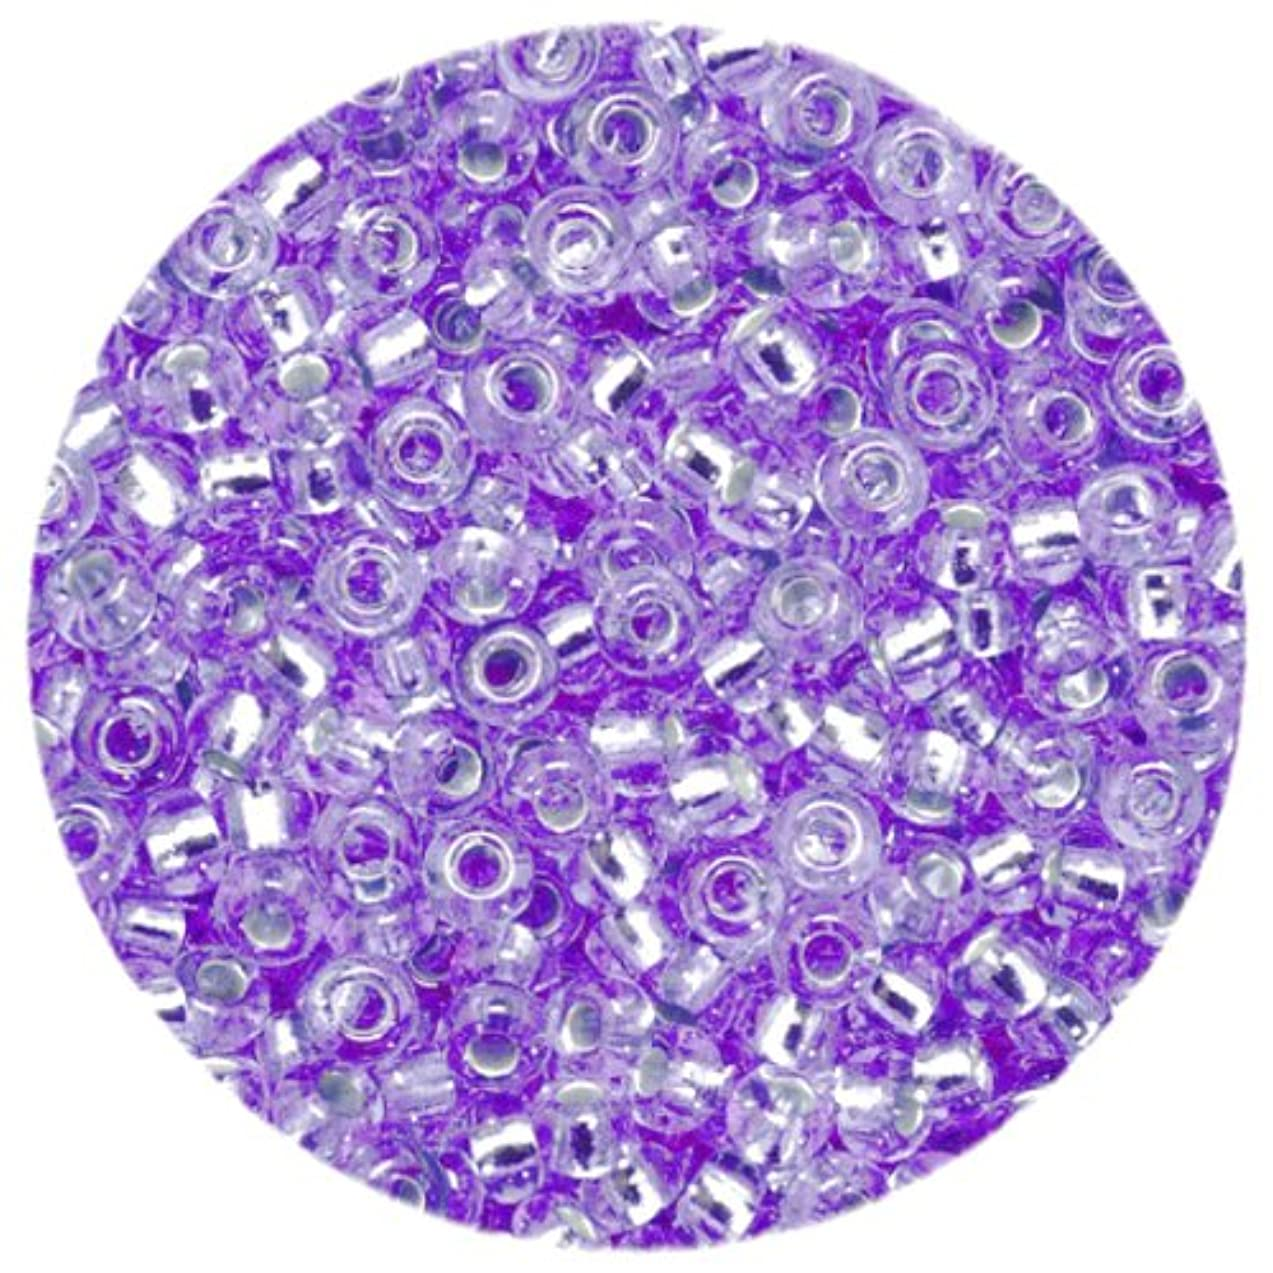 Efco 1022242 3.5 mm 17 g Indian Beads Silver-Lined, Lavender